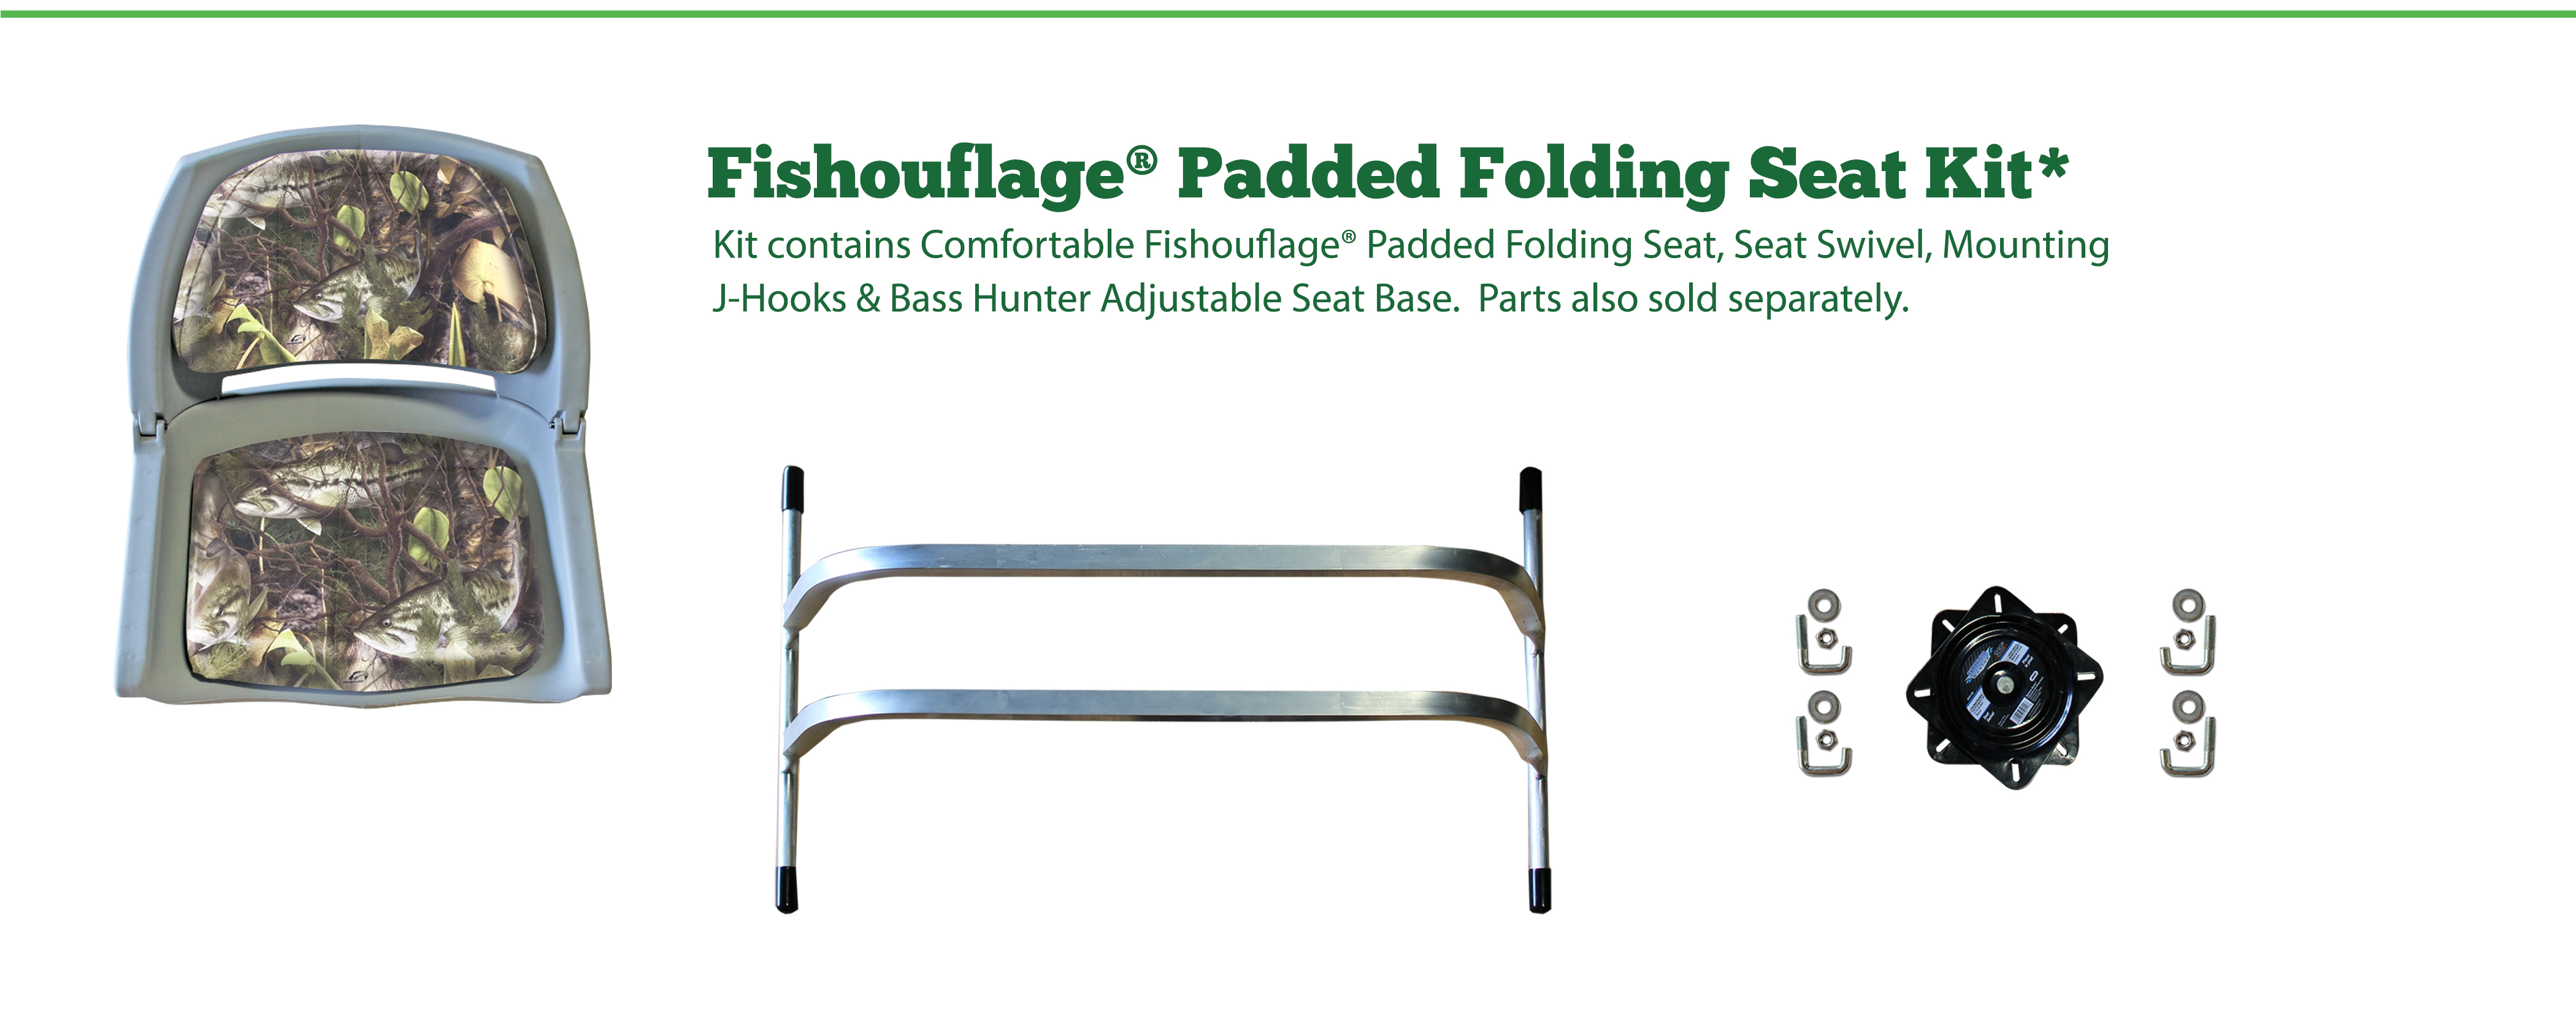 Fishouflage Padded Folding Seat